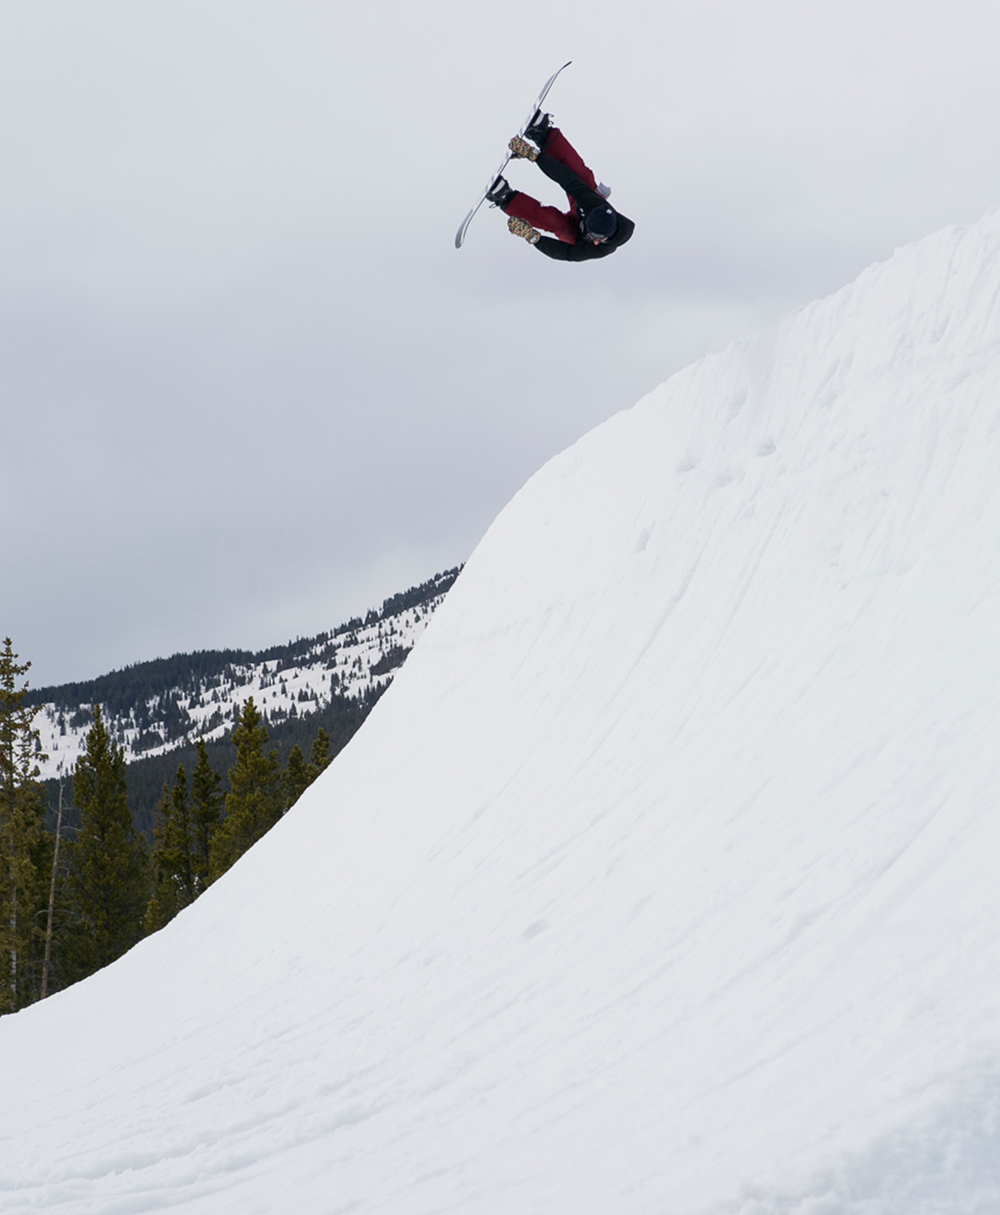 Jake Olson-Elm Backflpping at Copper Mountain   P: Aaron Dodds